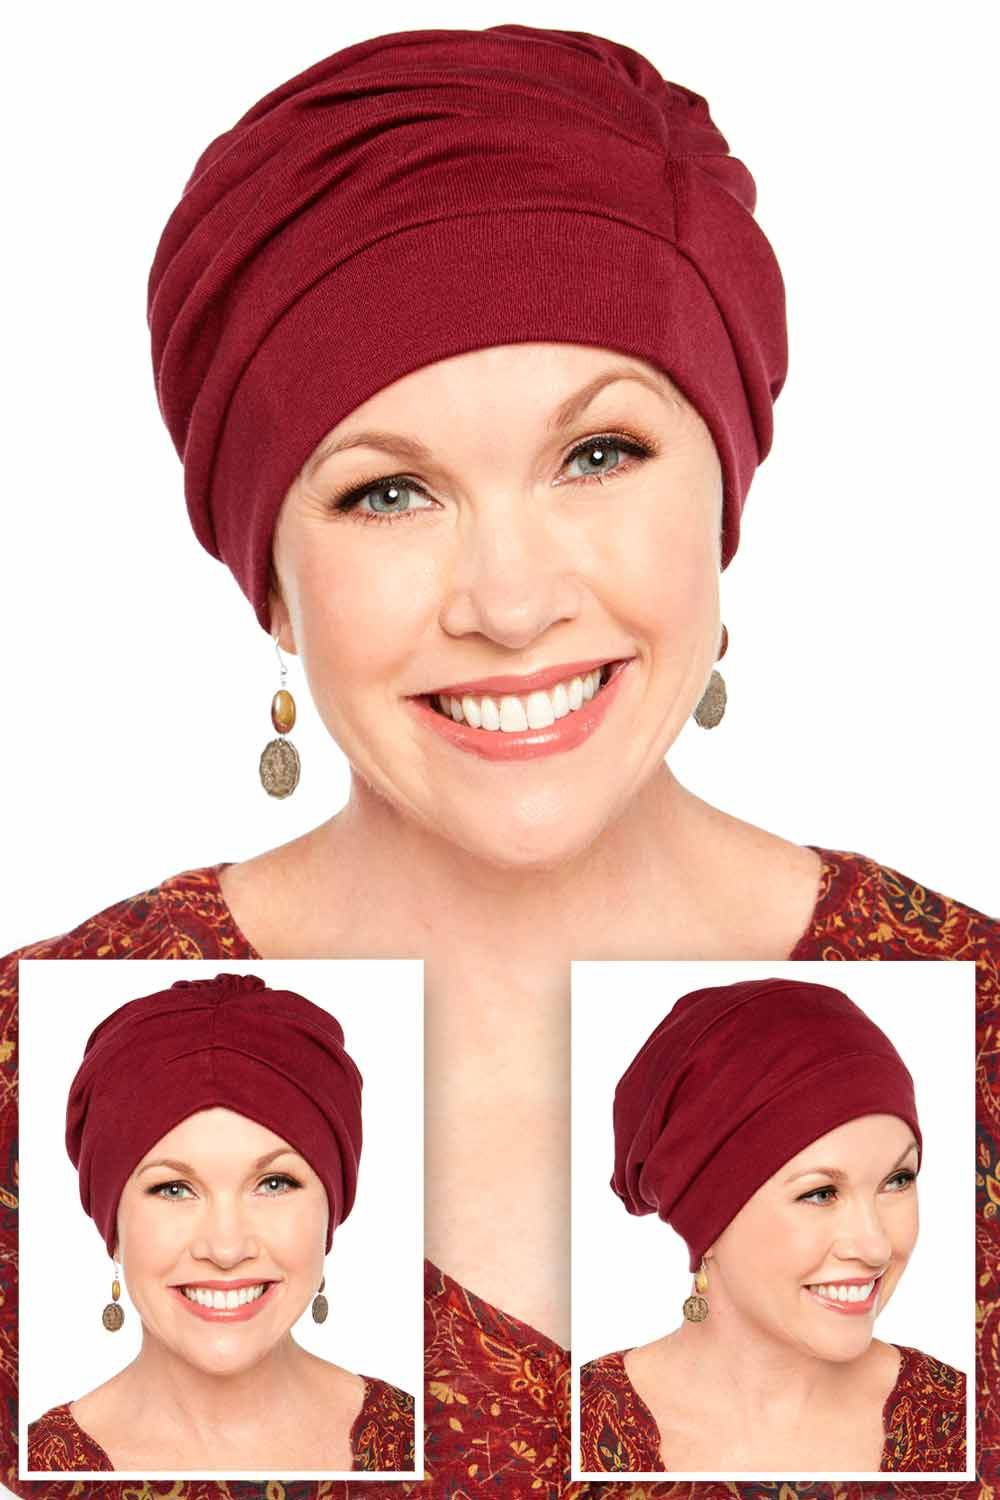 Best hats for chemo - Cotton Trinity turban